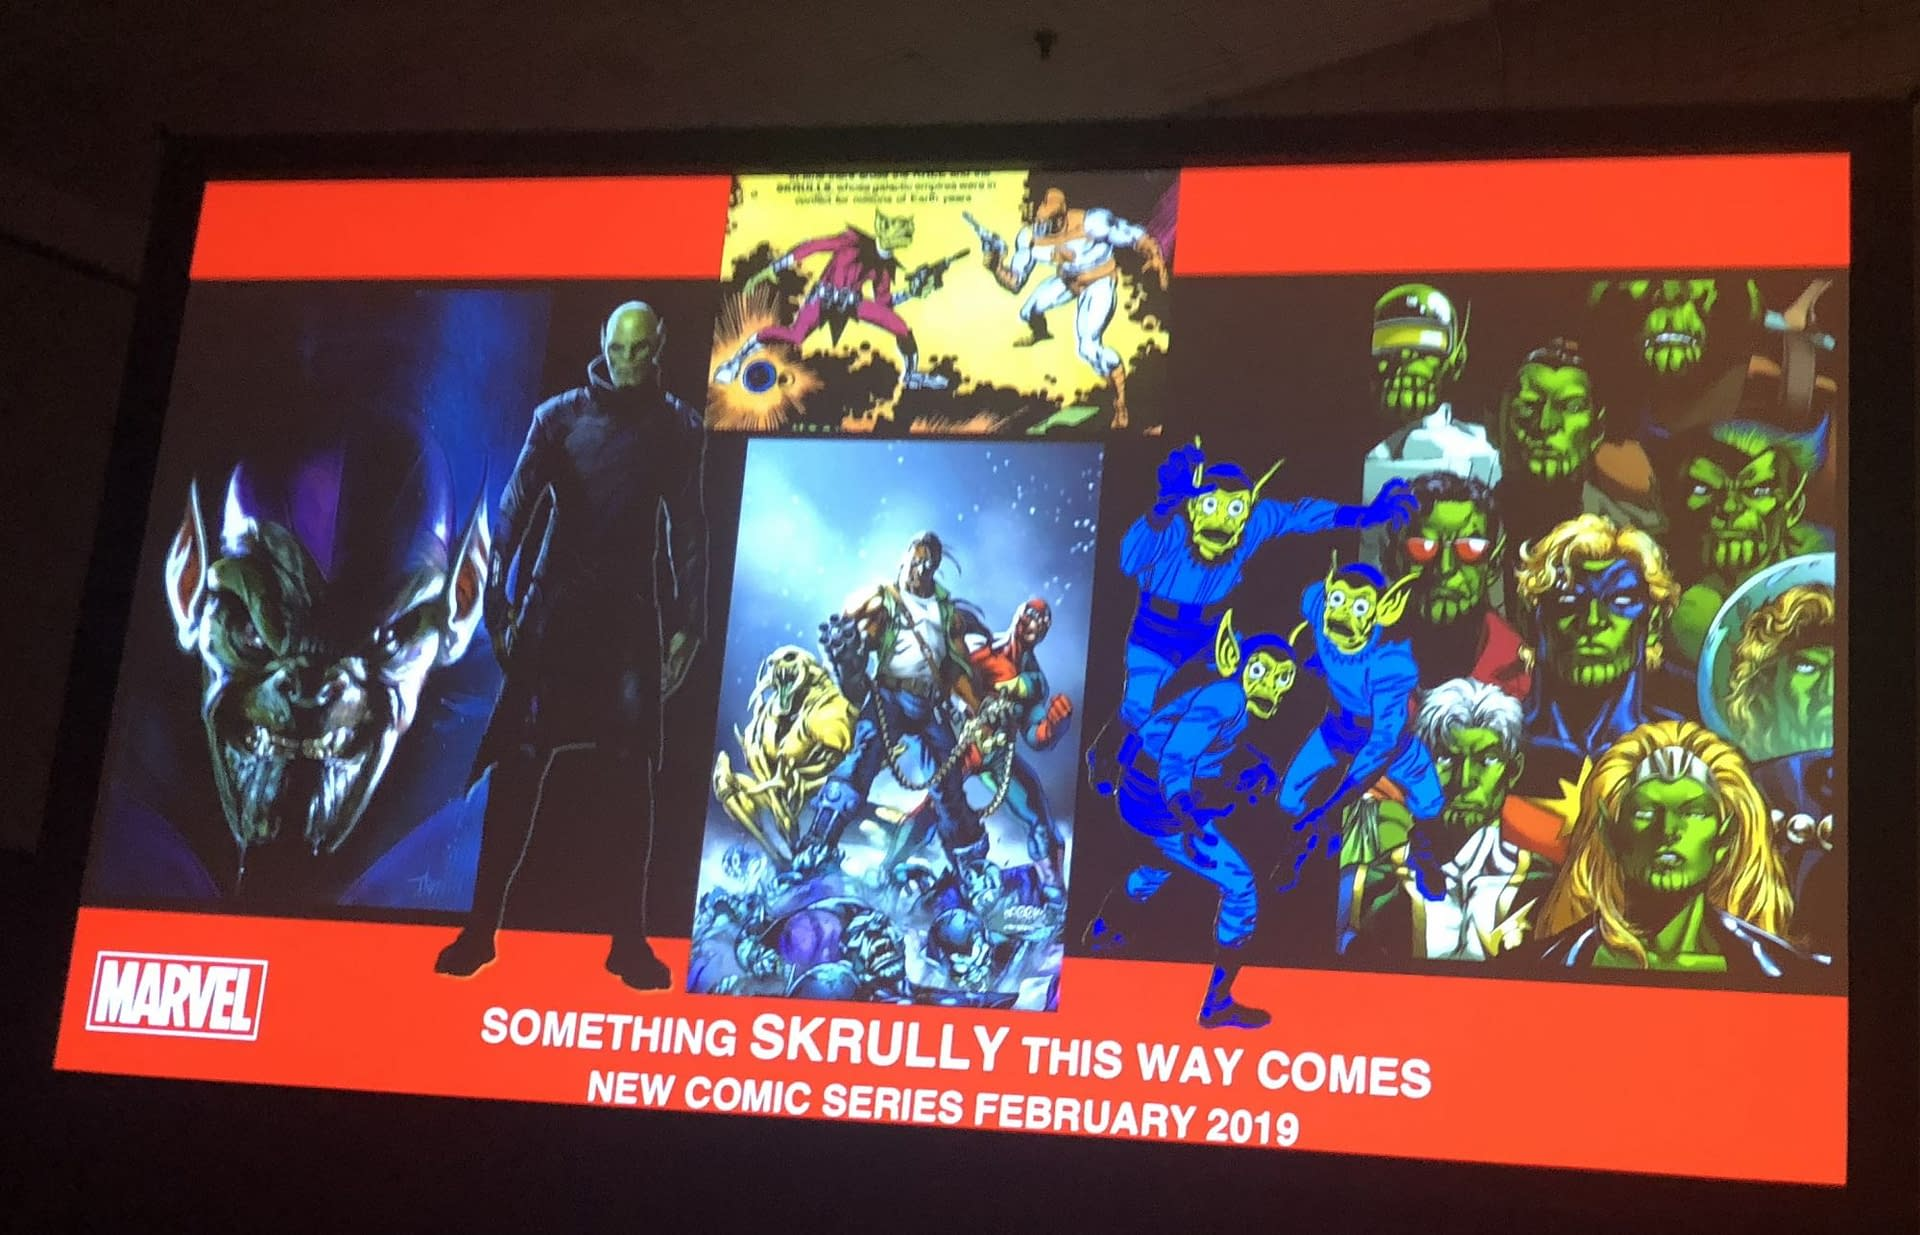 Marvel Comics to Publish 'Meet The Skrulls' by Robbie Thompson and Niko Henrichon